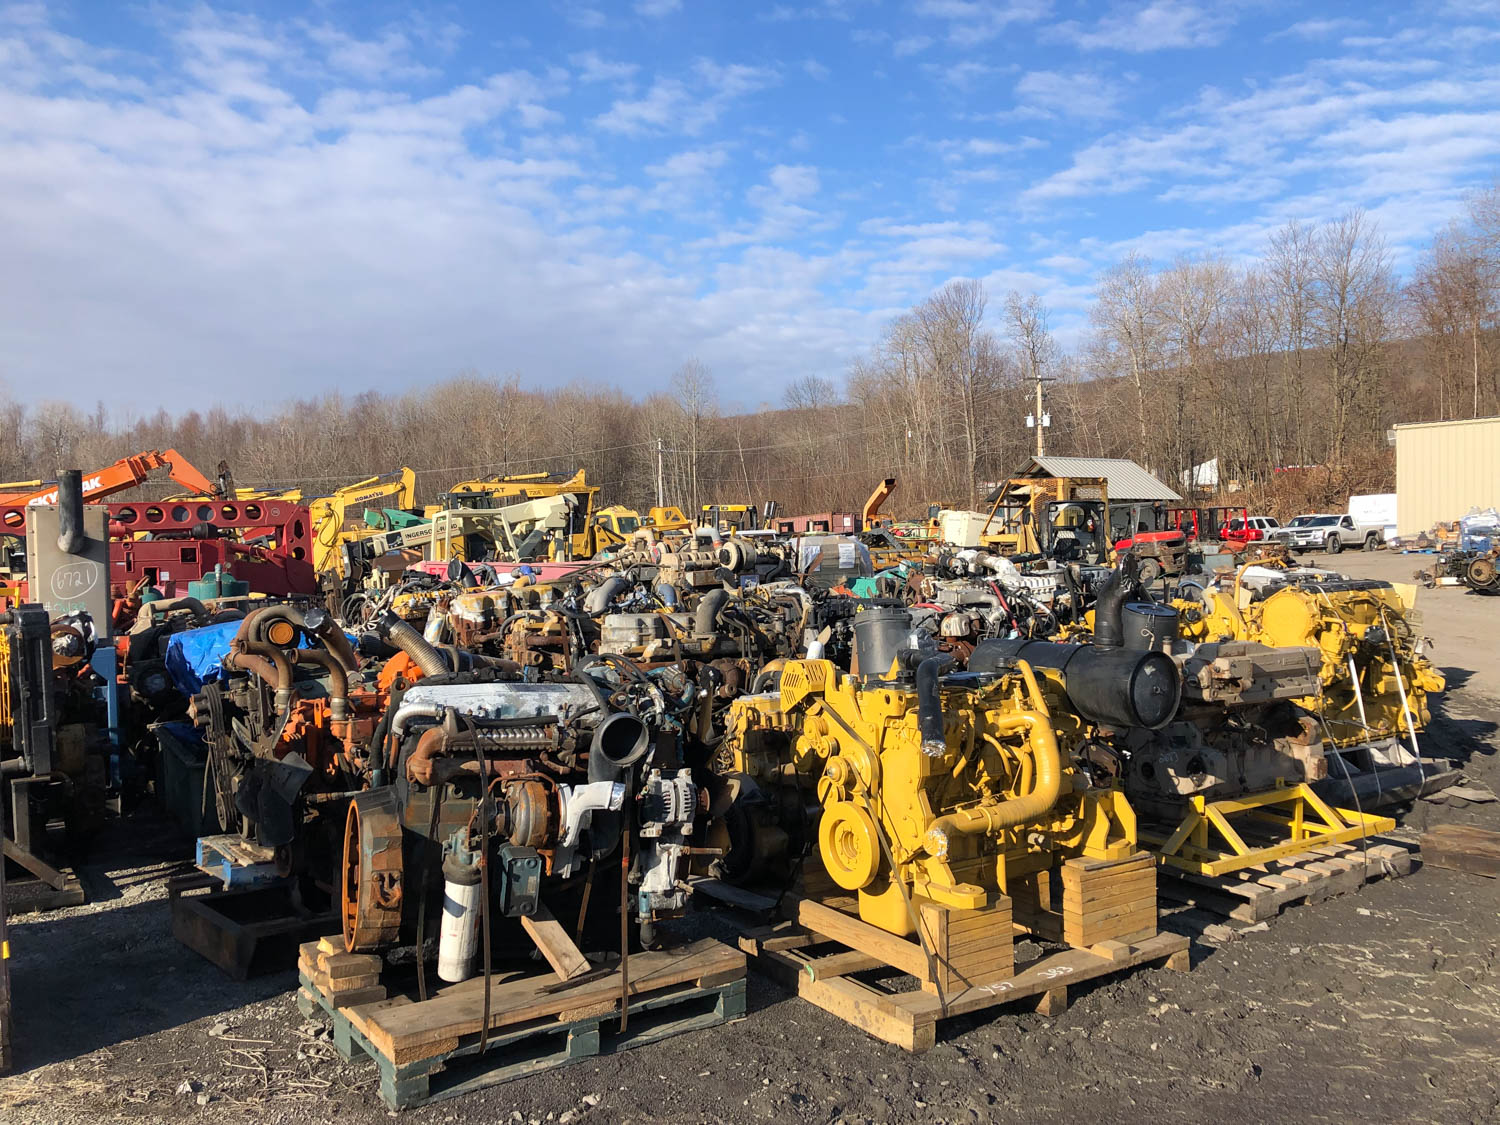 In The Land Of The Dinosaurs The Behemoth Two Stroke Detroit Diesel Is King Hagerty Media